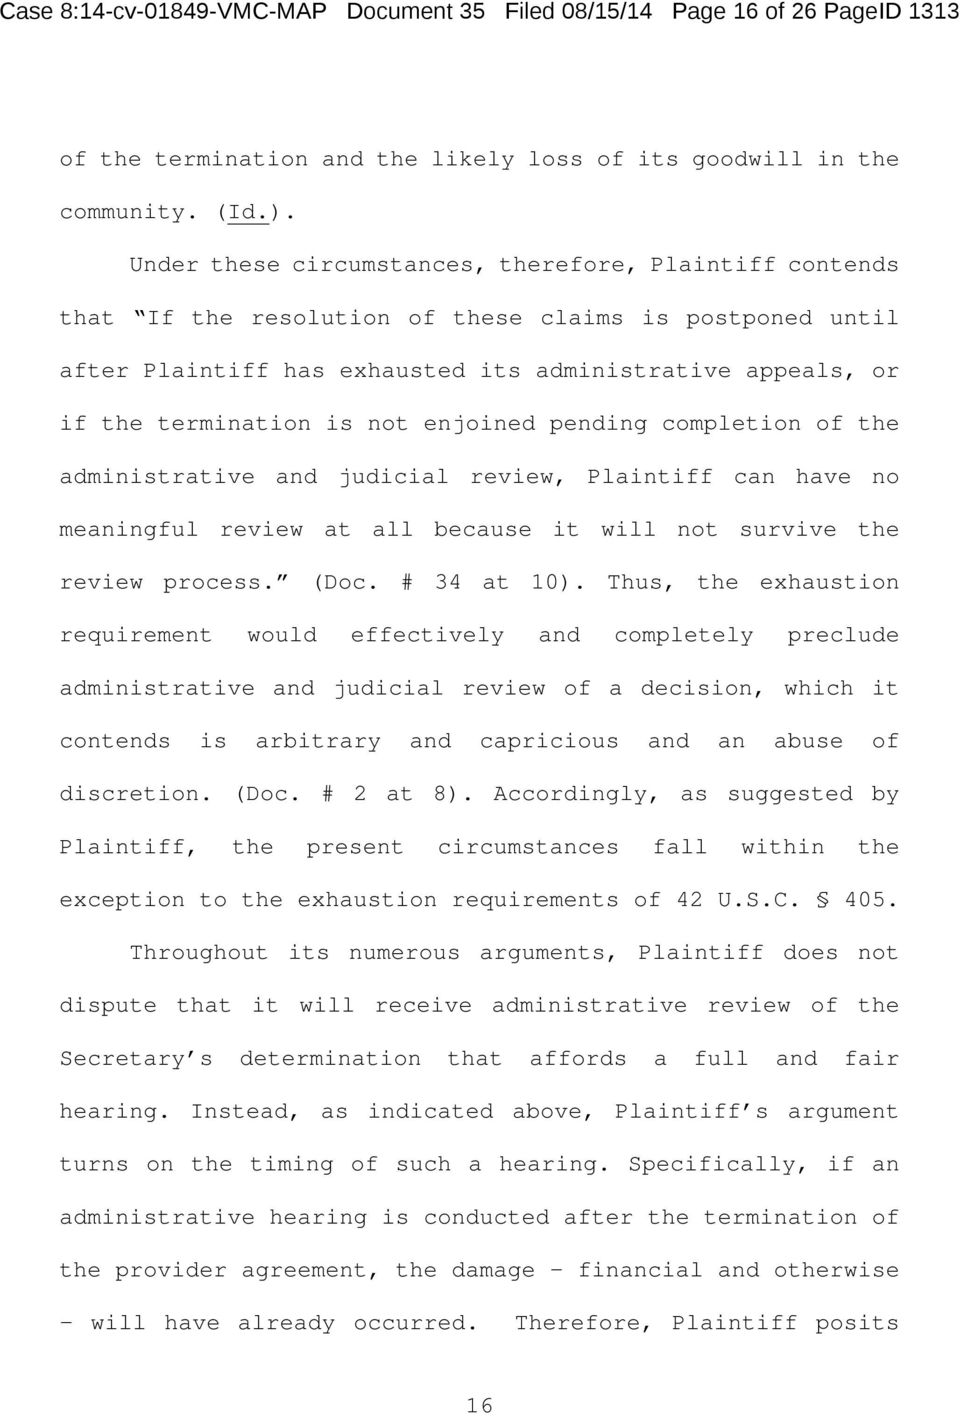 not enjoined pending completion of the administrative and judicial review, Plaintiff can have no meaningful review at all because it will not survive the review process. (Doc. # 34 at 10).